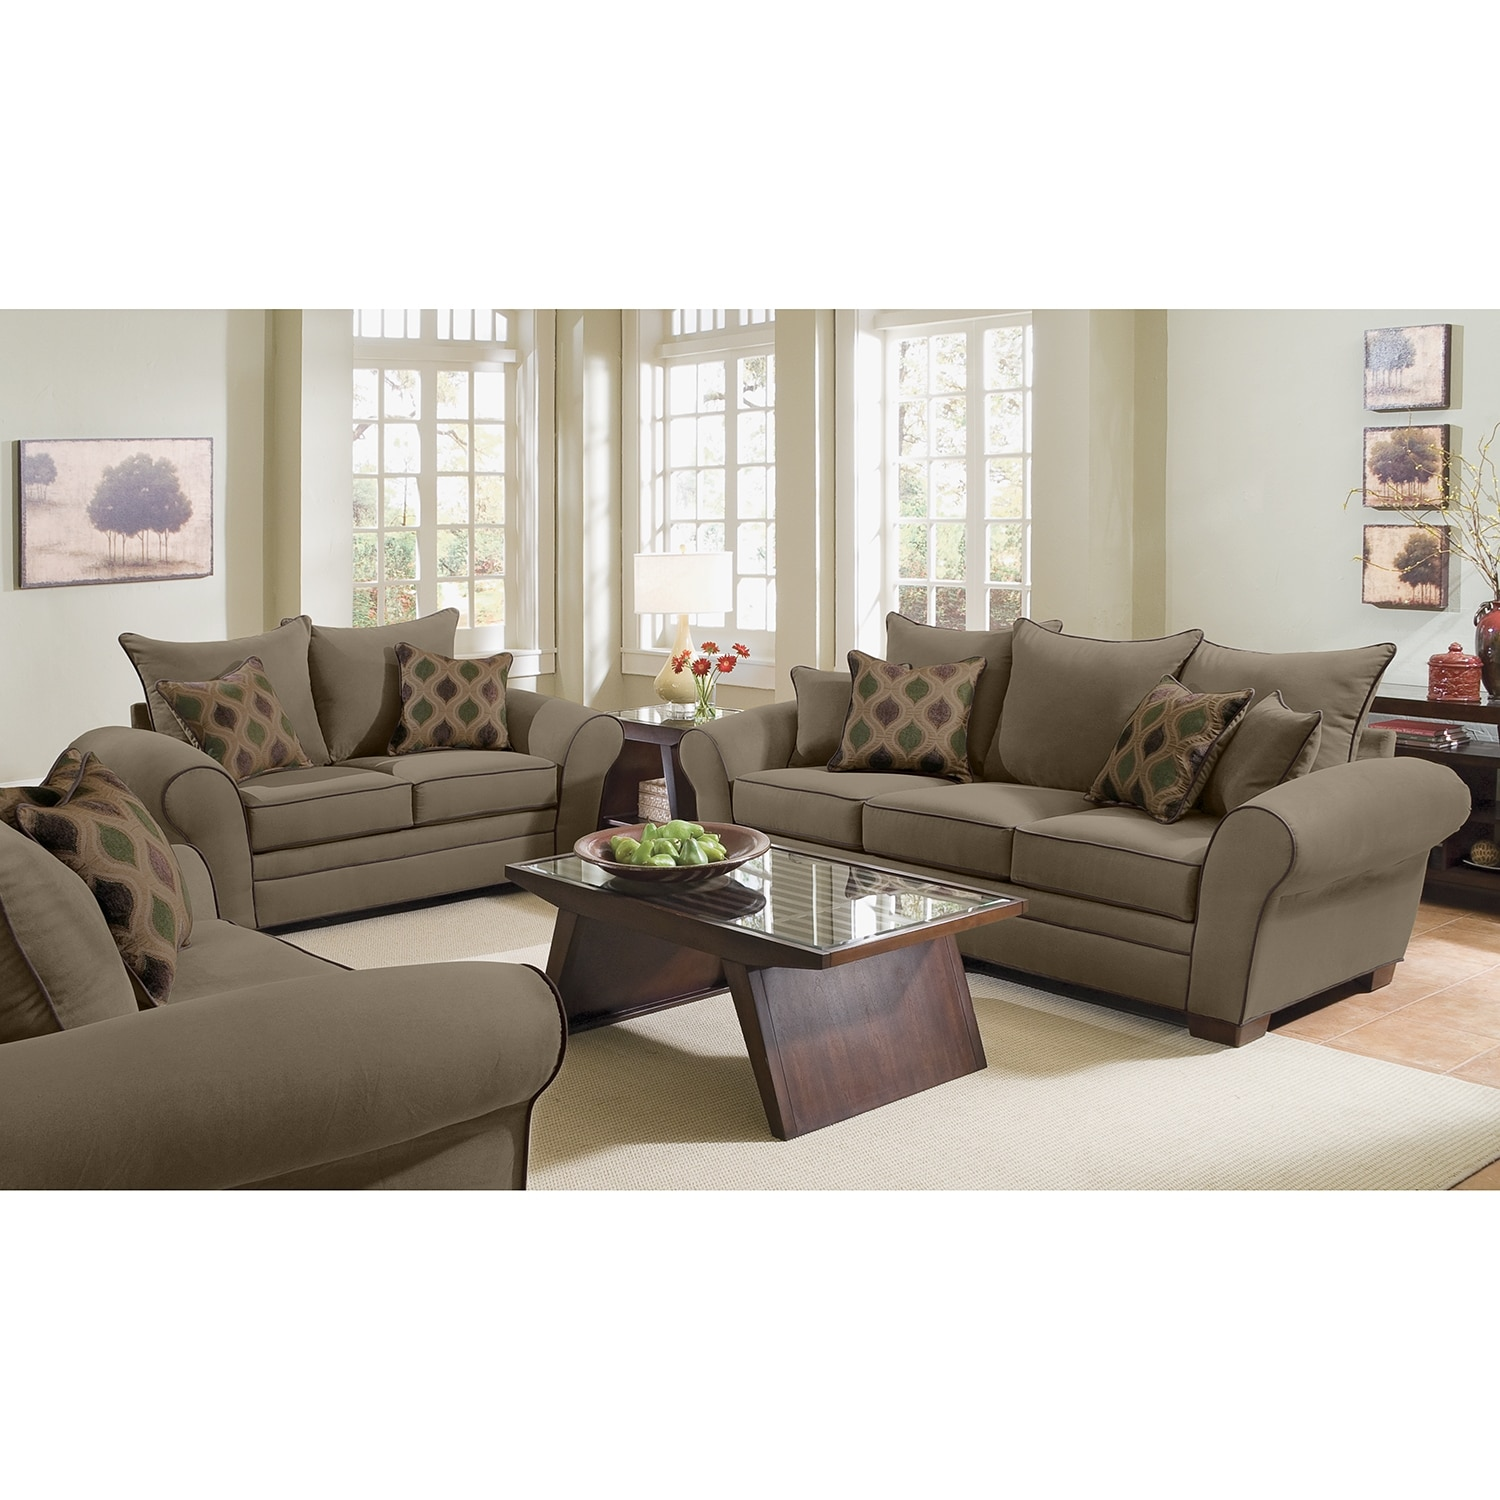 Rendezvous sofa and loveseat set olive value city for Living room sofa